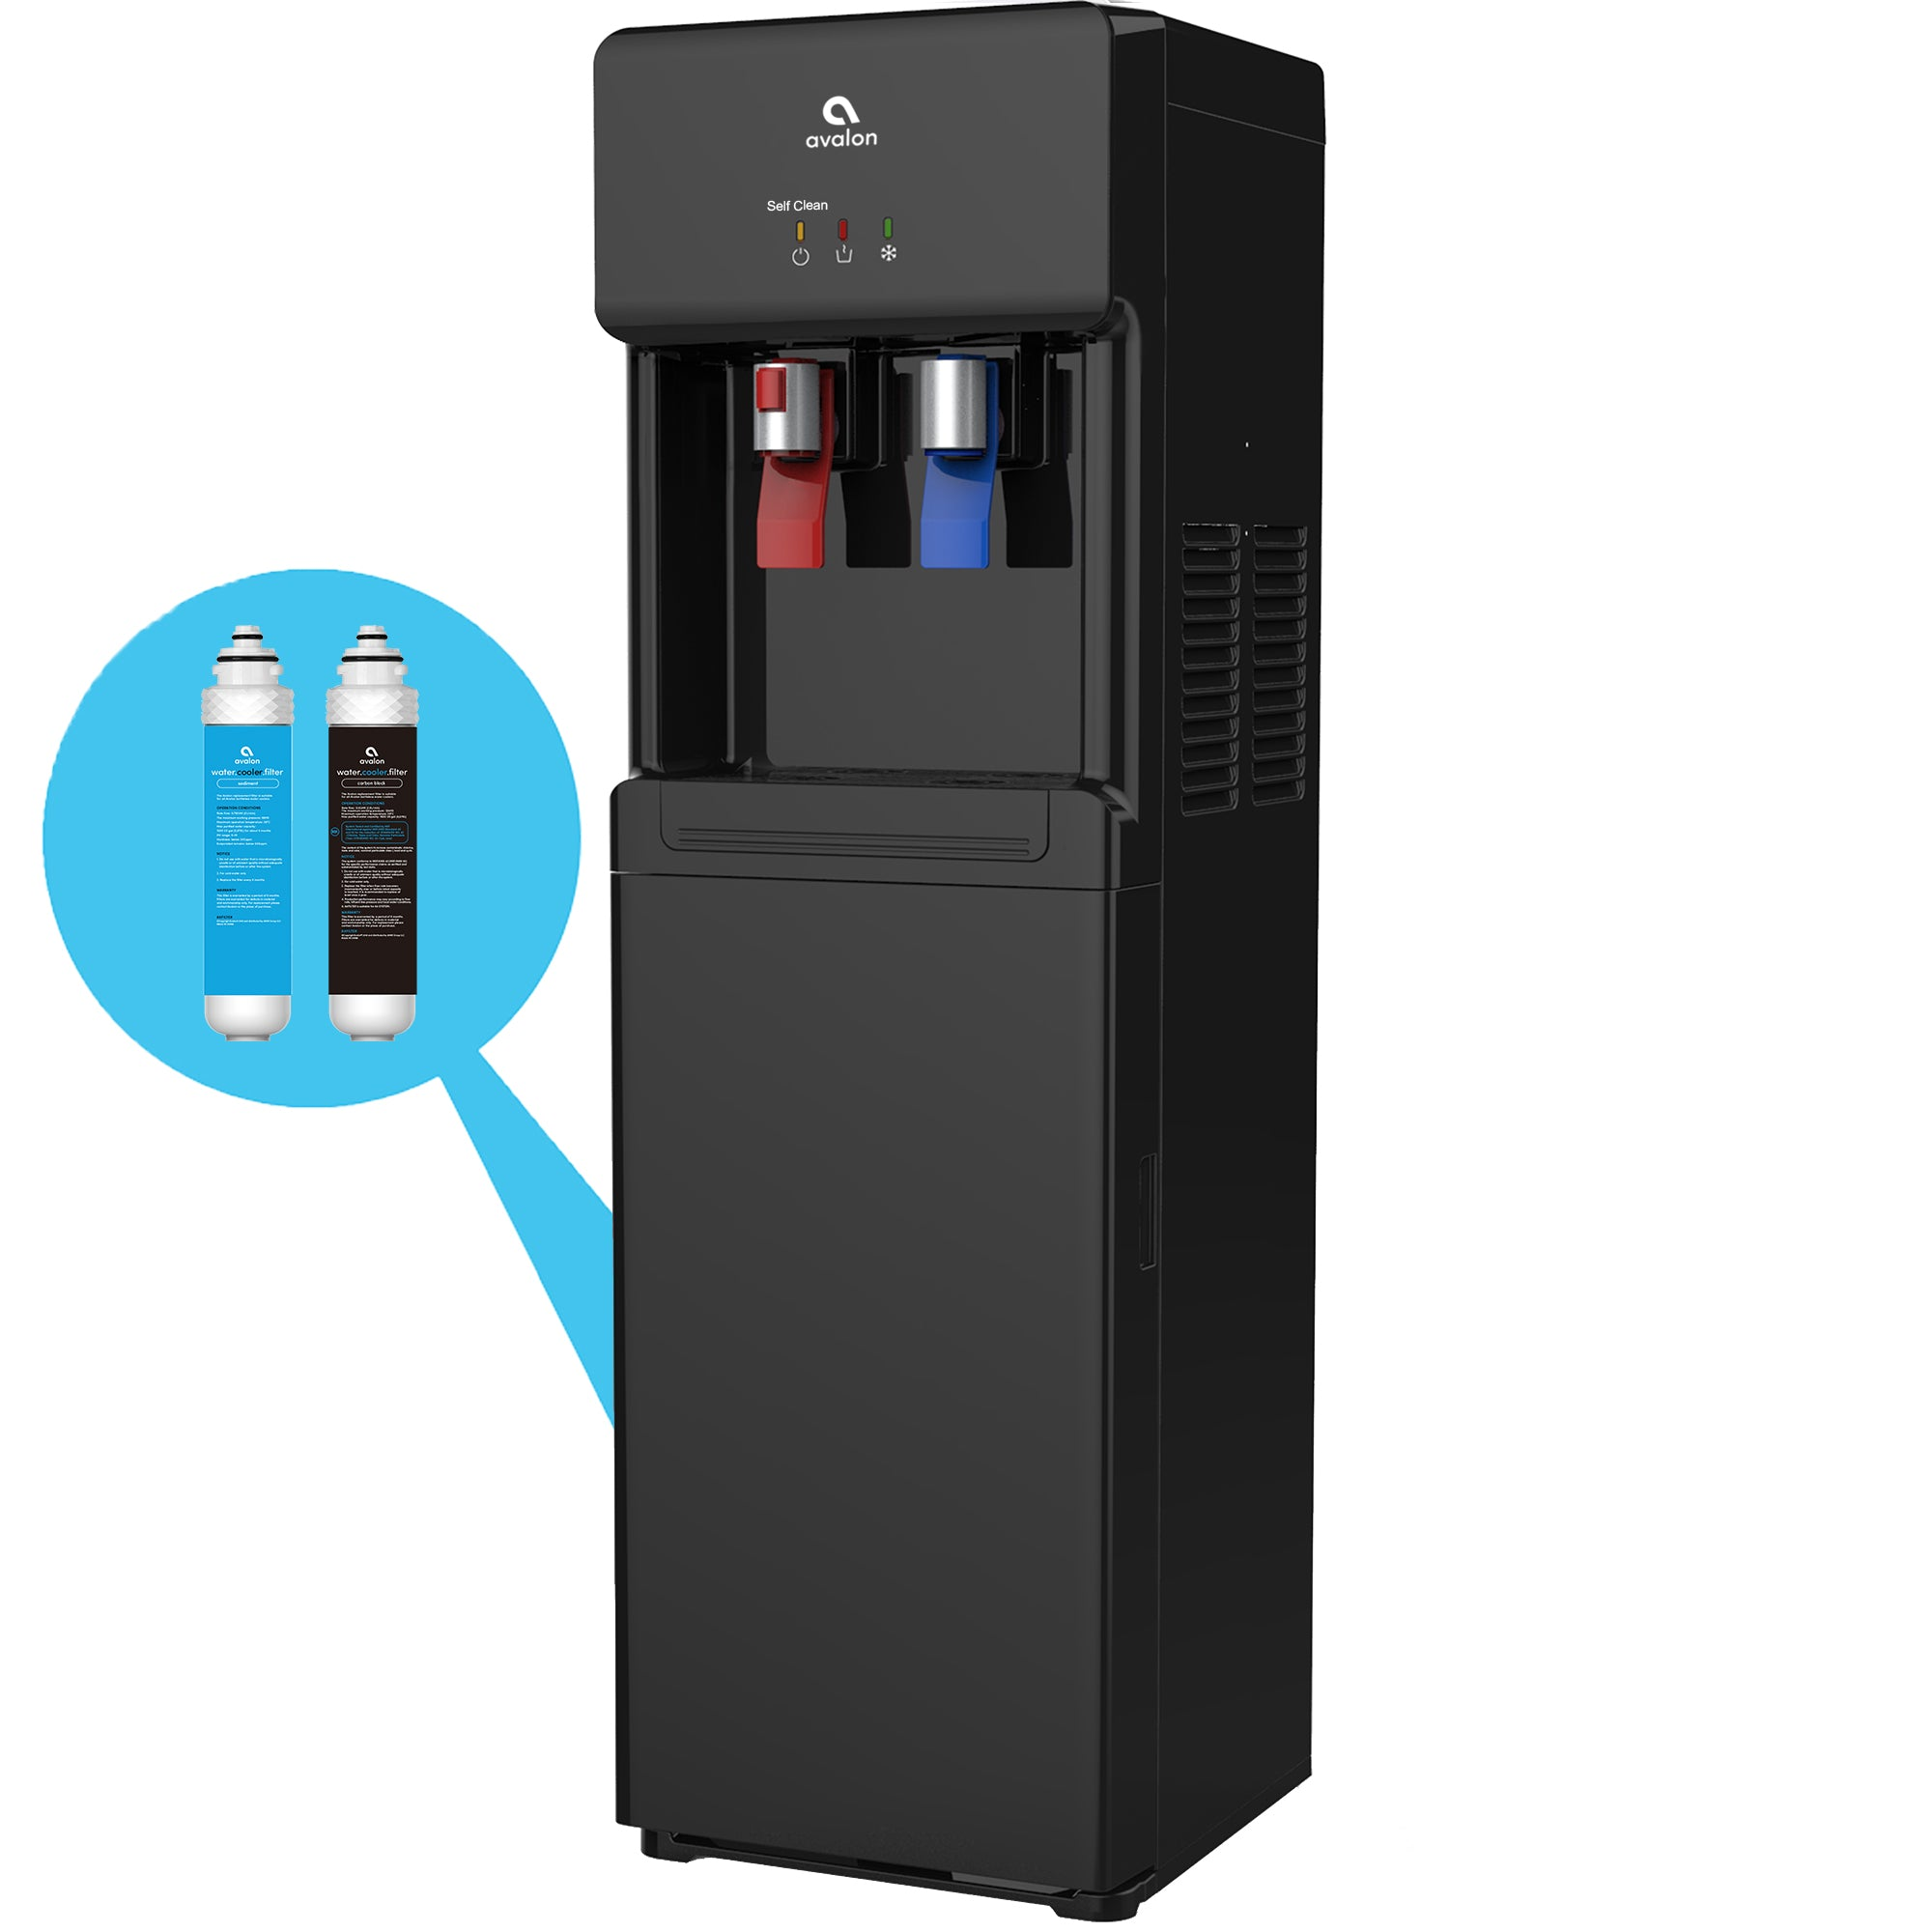 Avalon Self-Cleaning Bottleless Hot/Cold Water Cooler